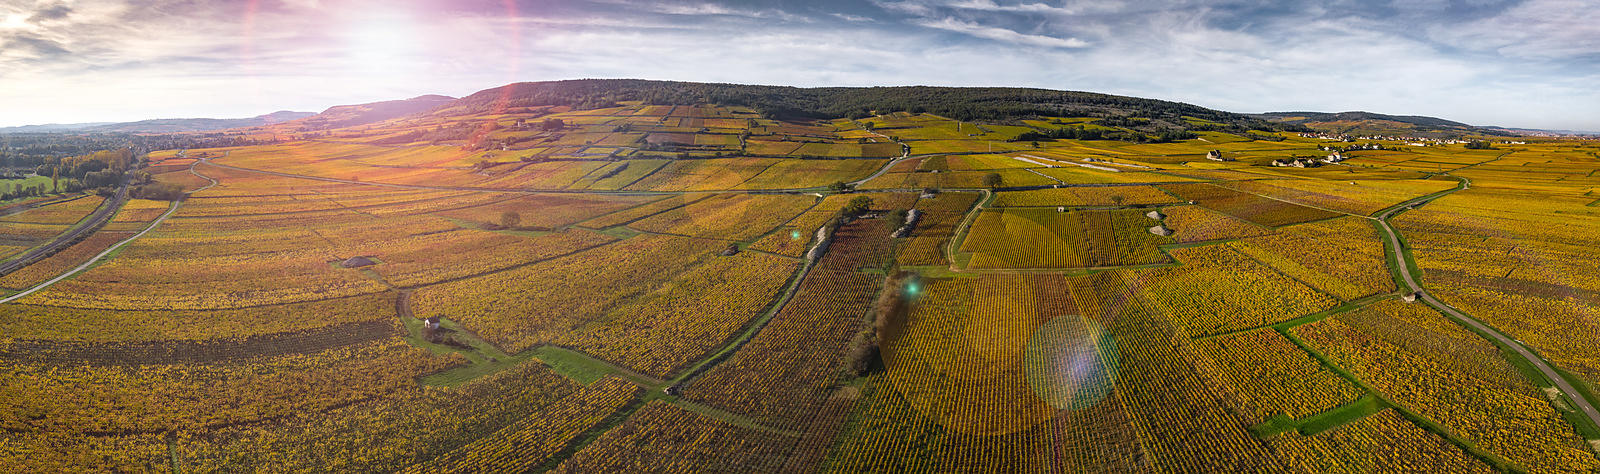 Amazingly beautiful aerial panoramic photo of the colorful autumn vineyards of Burgundy, France.